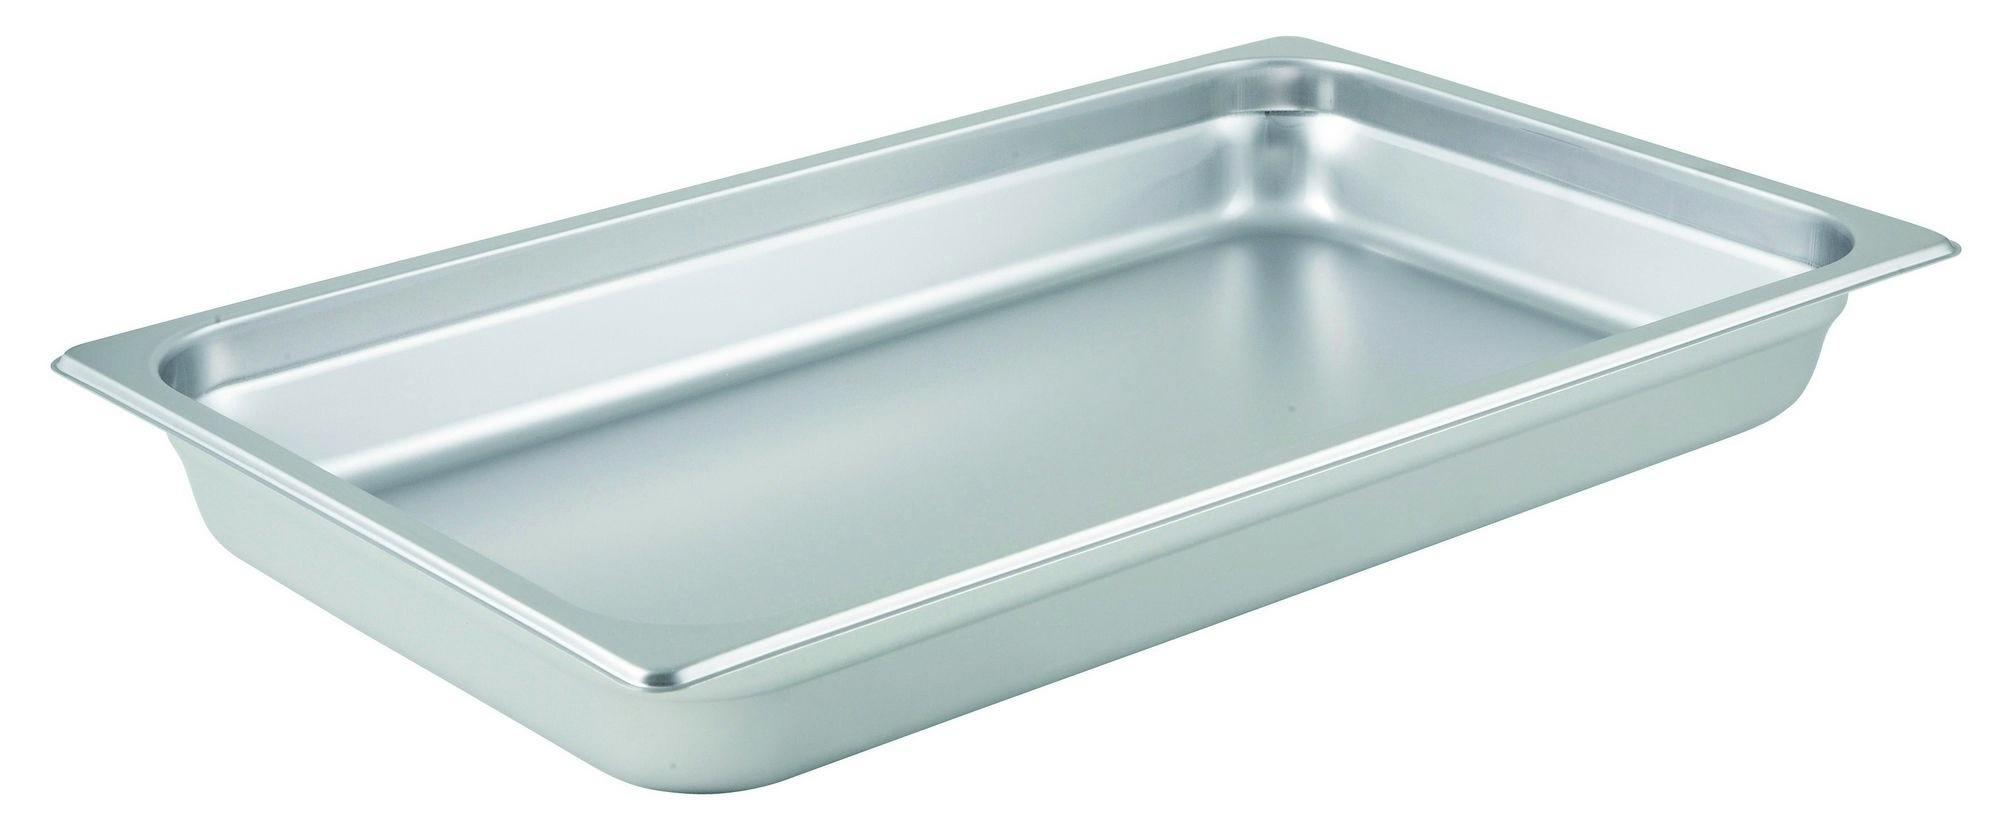 "Winco SPJP-102 Full Size Anti-Jam 23 Gauge Steam Table Pan 2-1/2"" Deep"